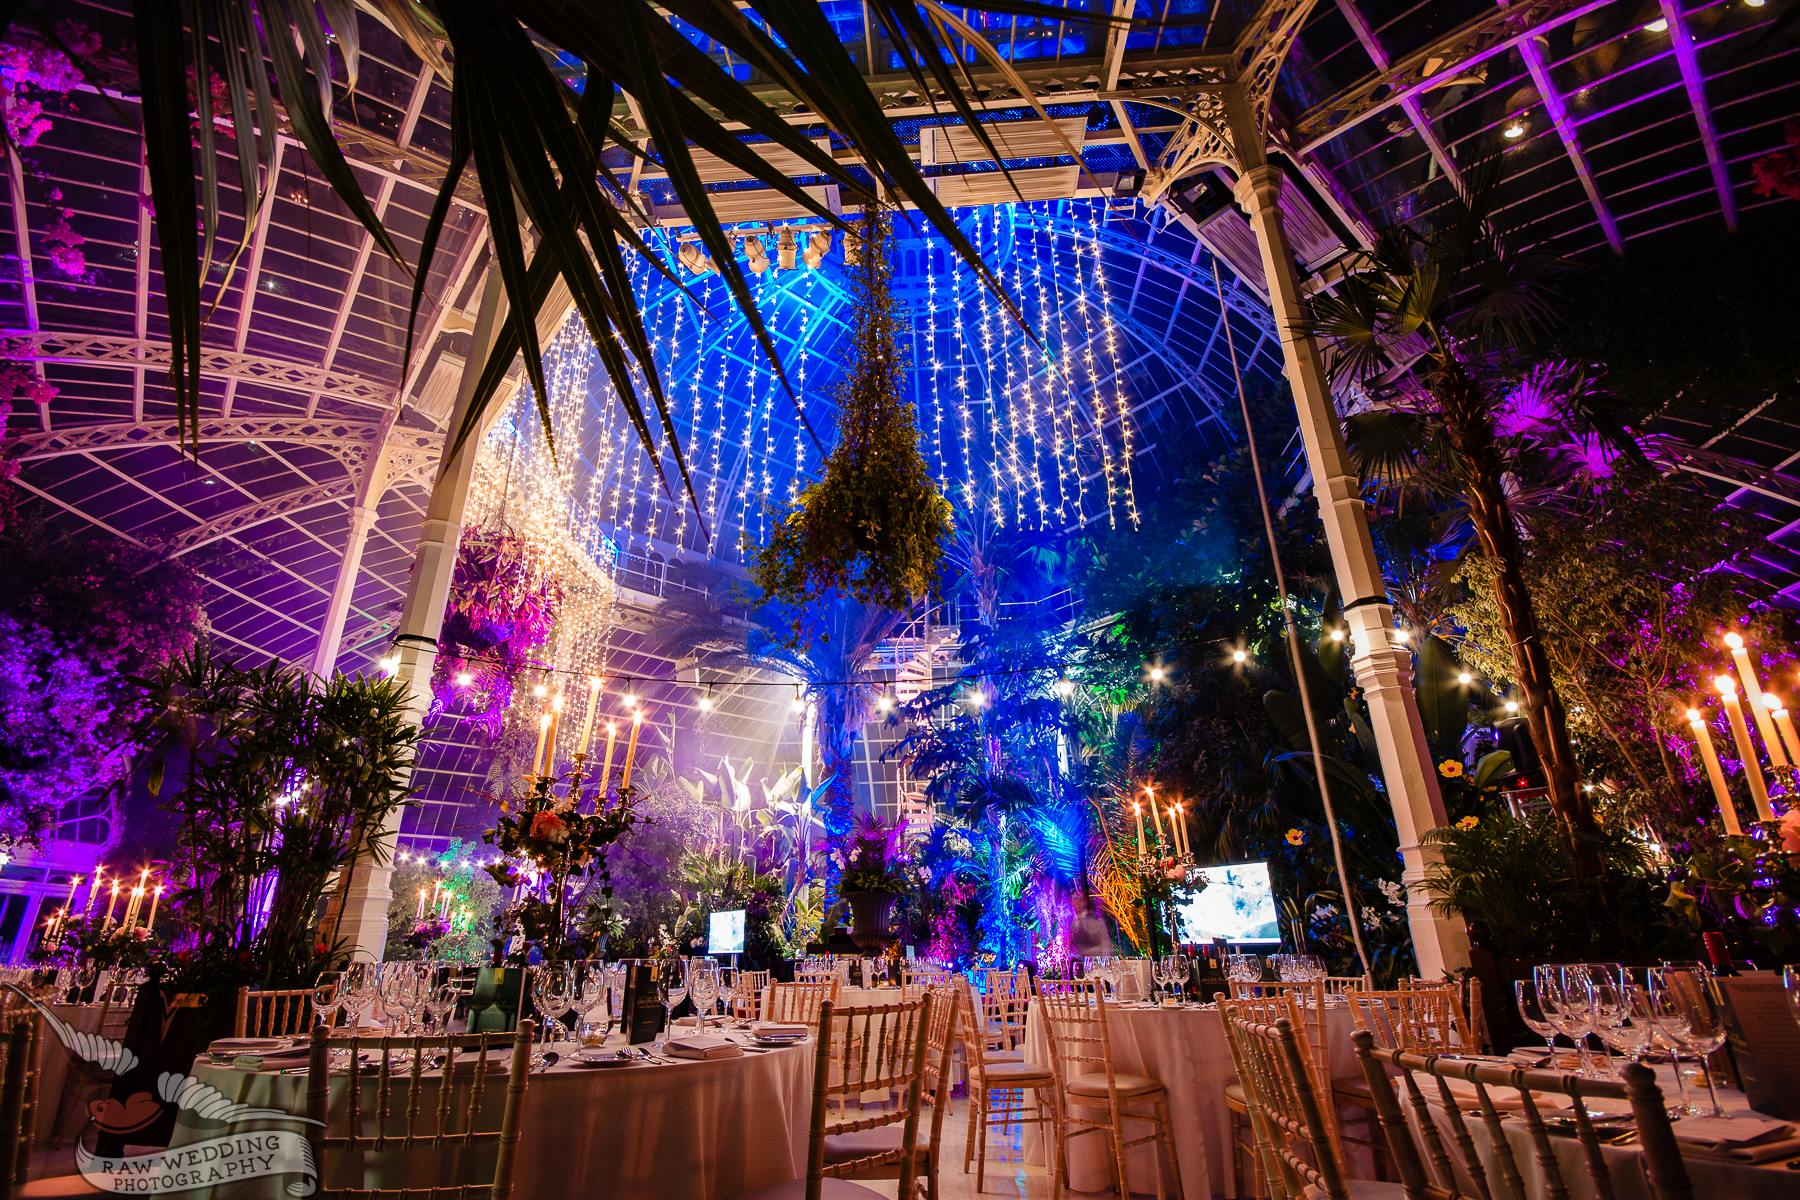 Charity Dinner in Liverpool, Sefton Park Palm House